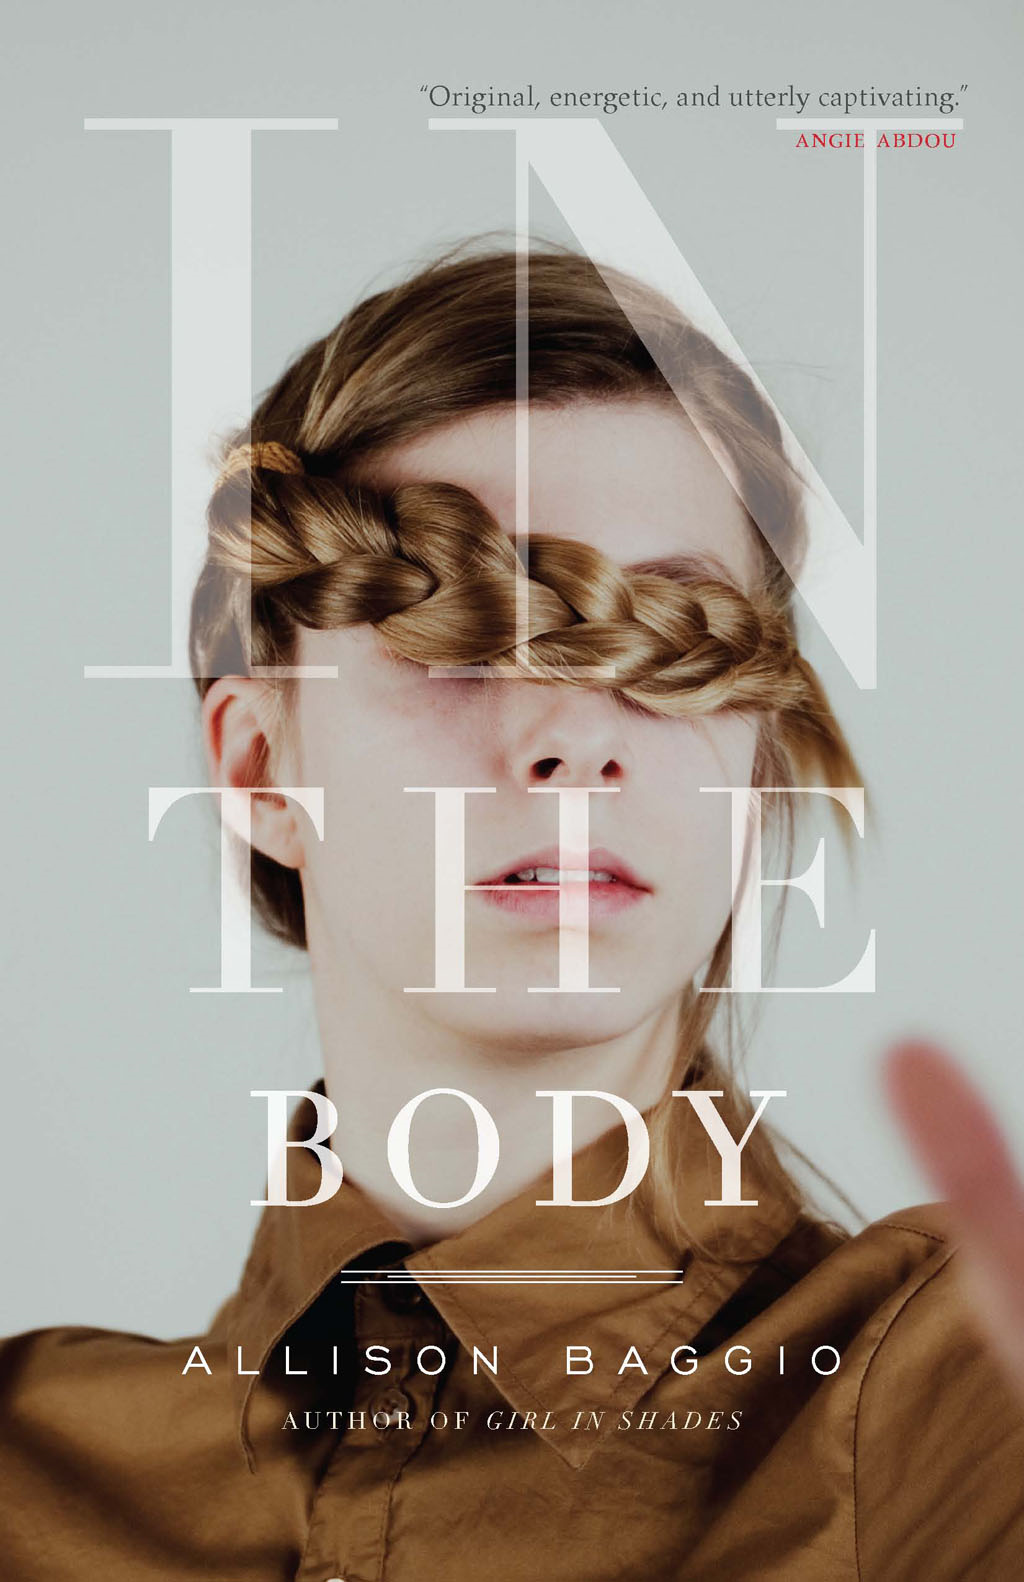 In The Body By: Allison Baggio